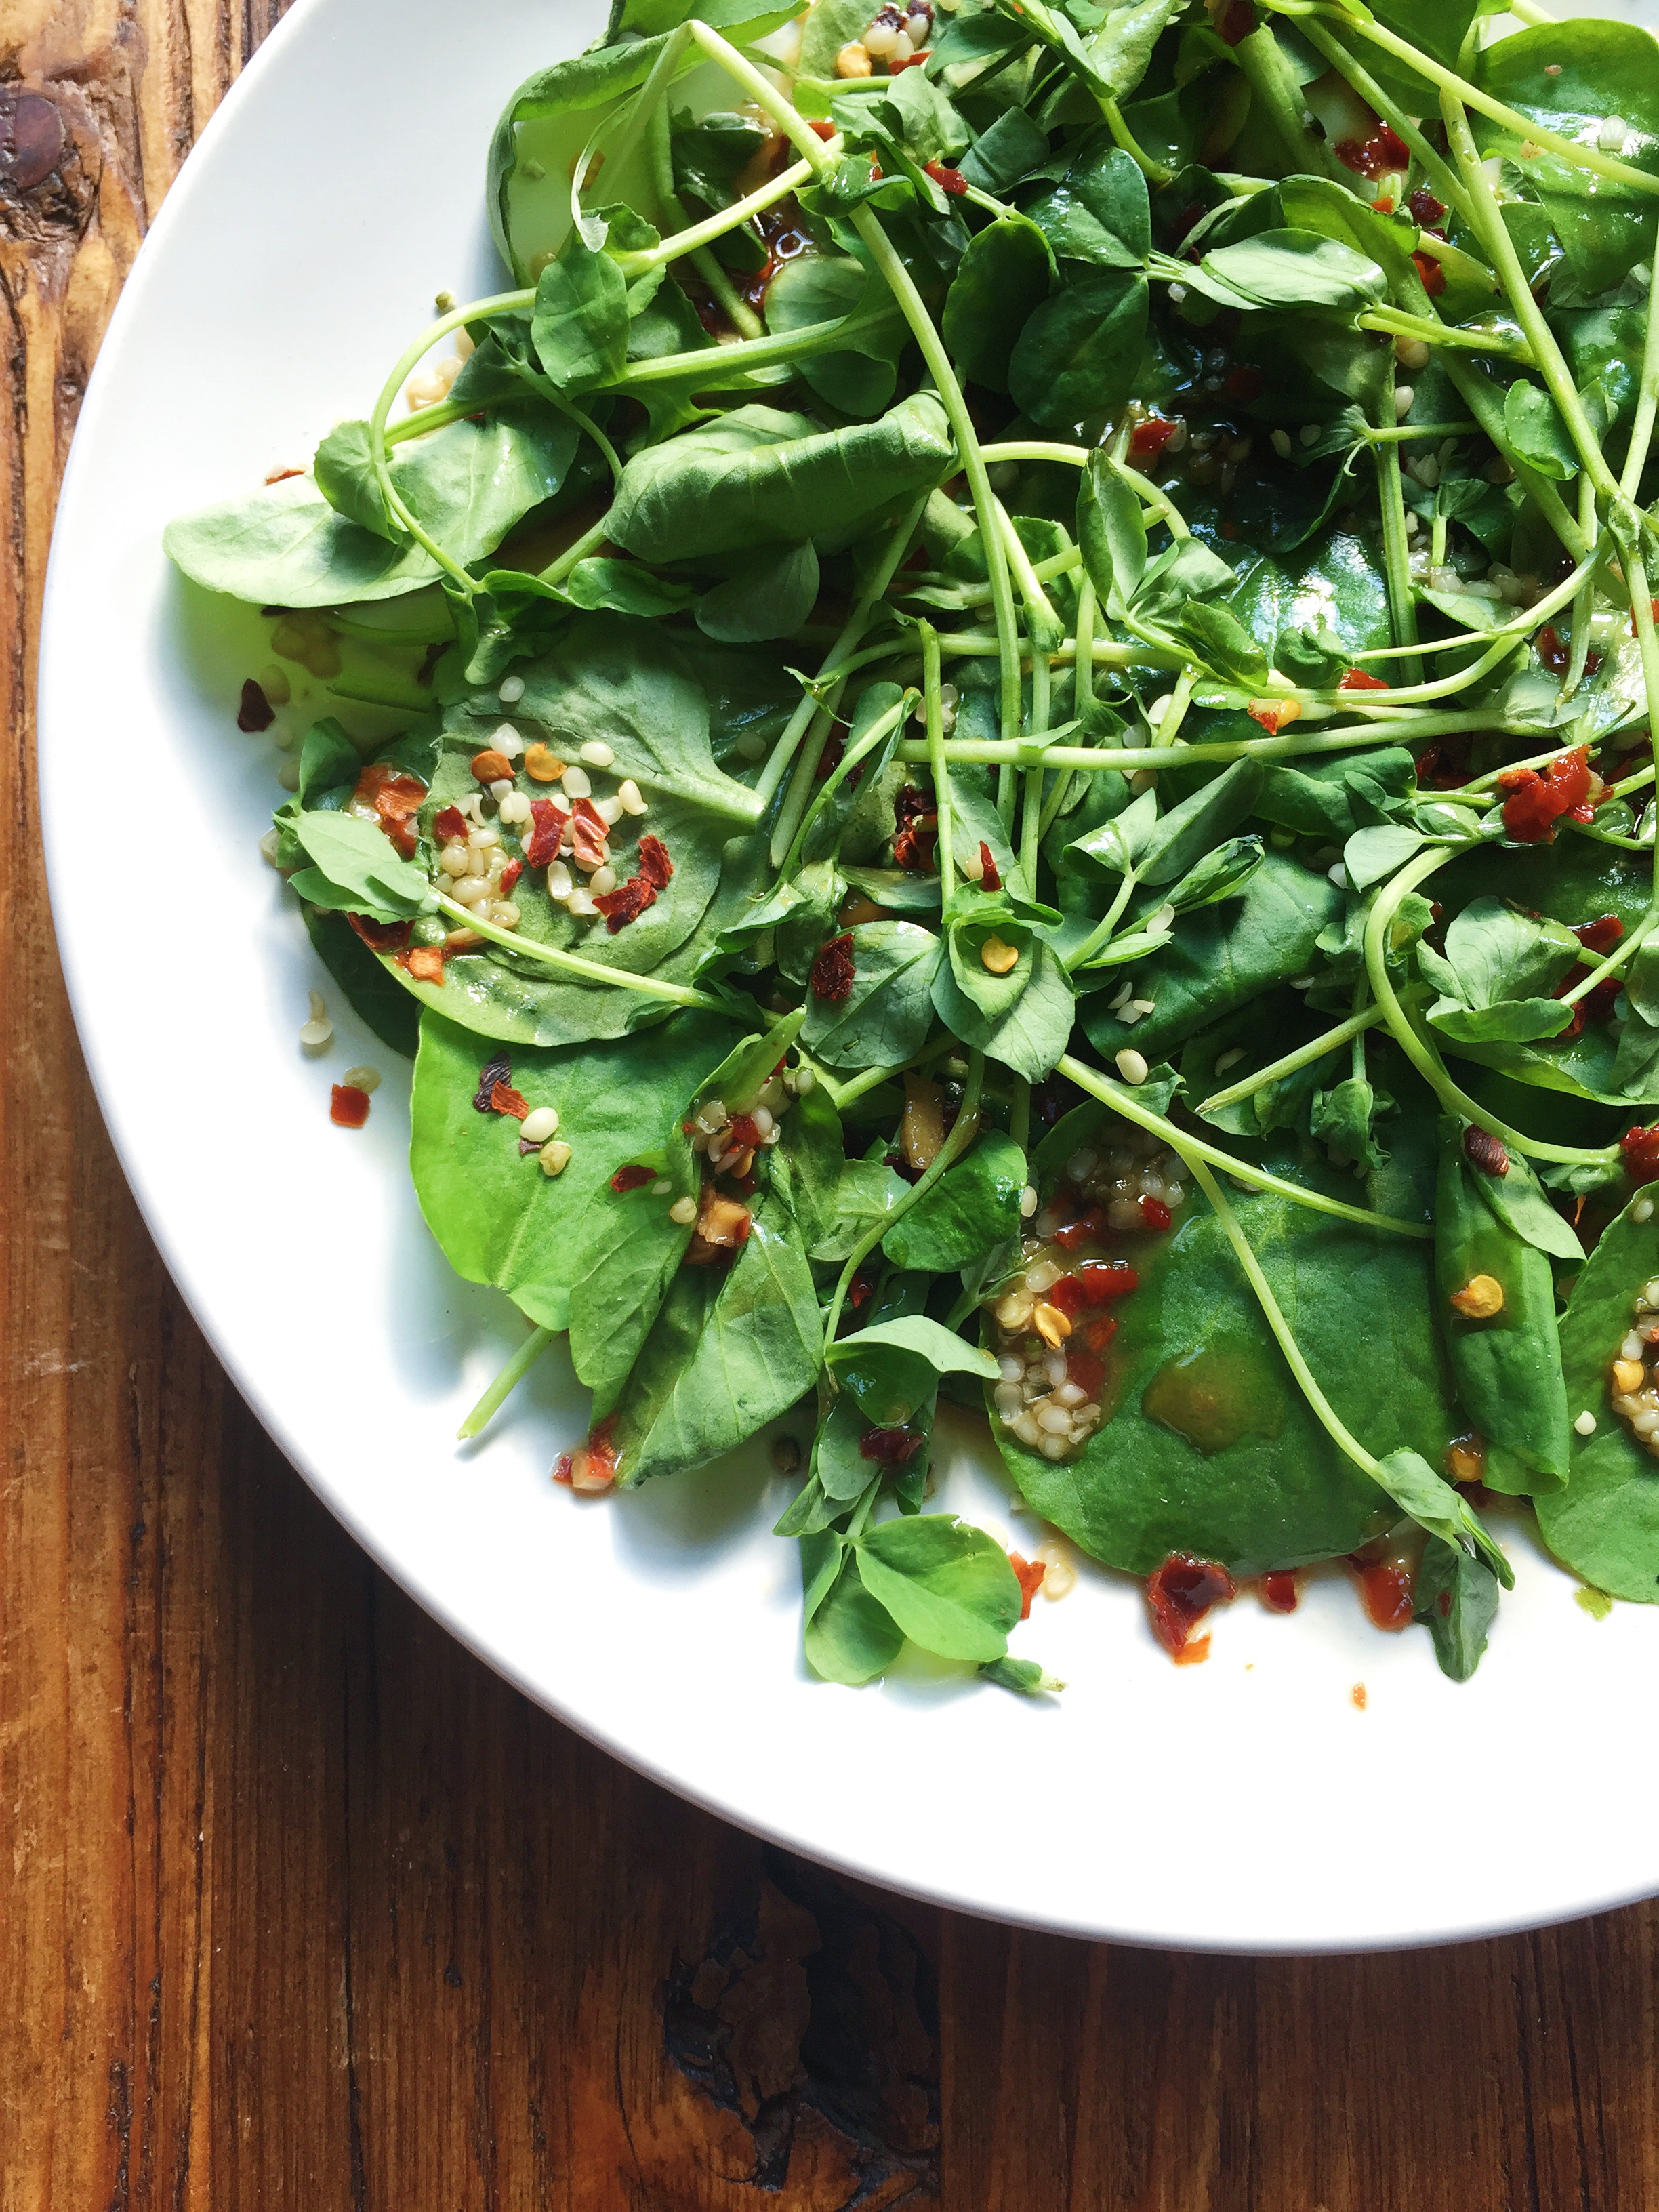 Spicy Asian Watercress Salad